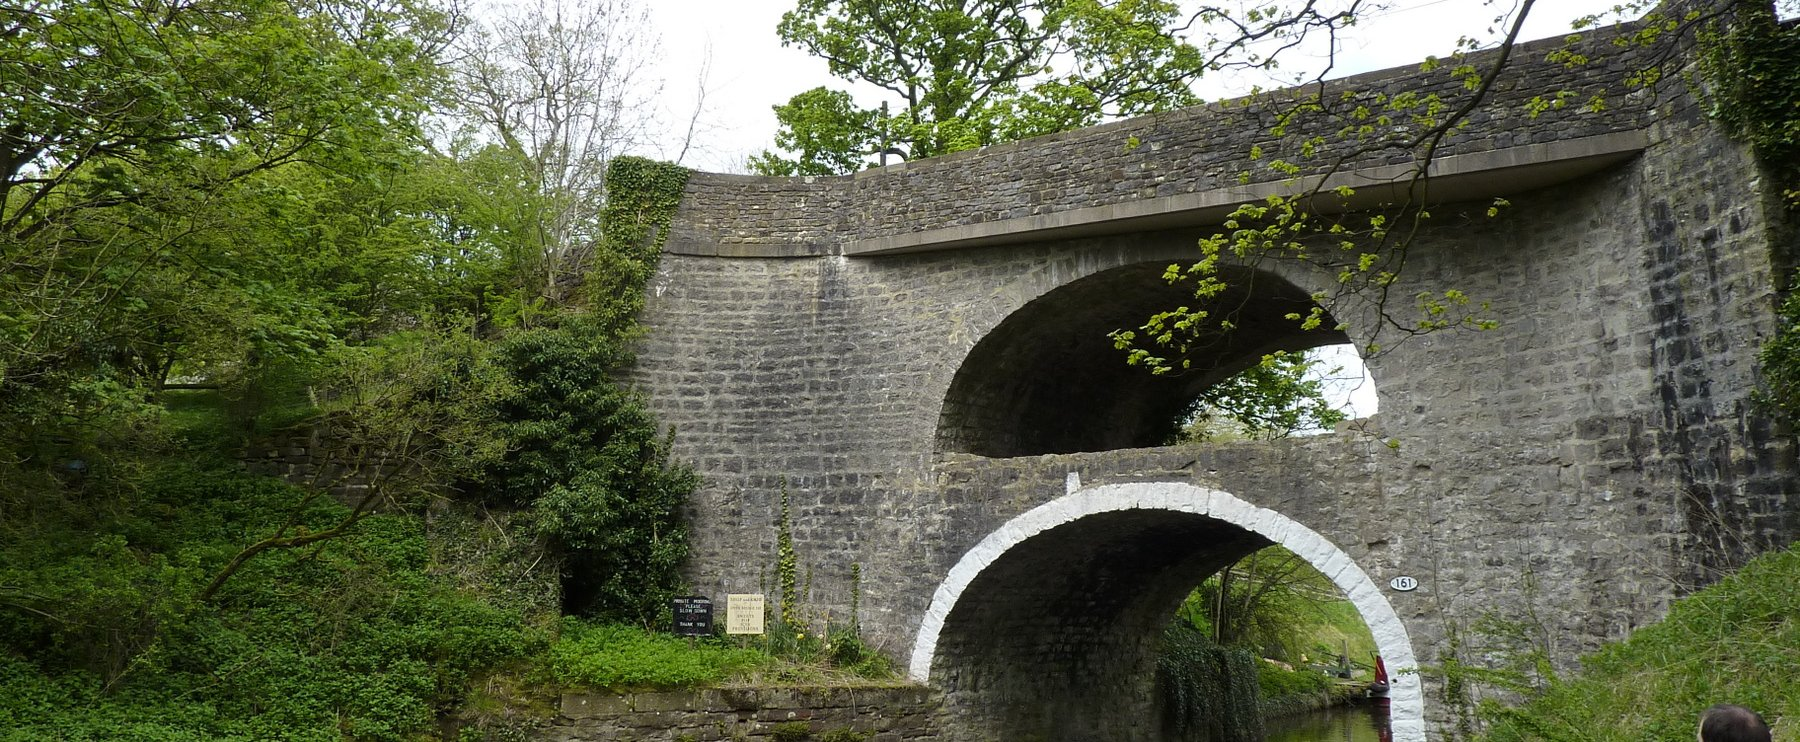 Double-arch bridge on the Leeds-Liverpool canal